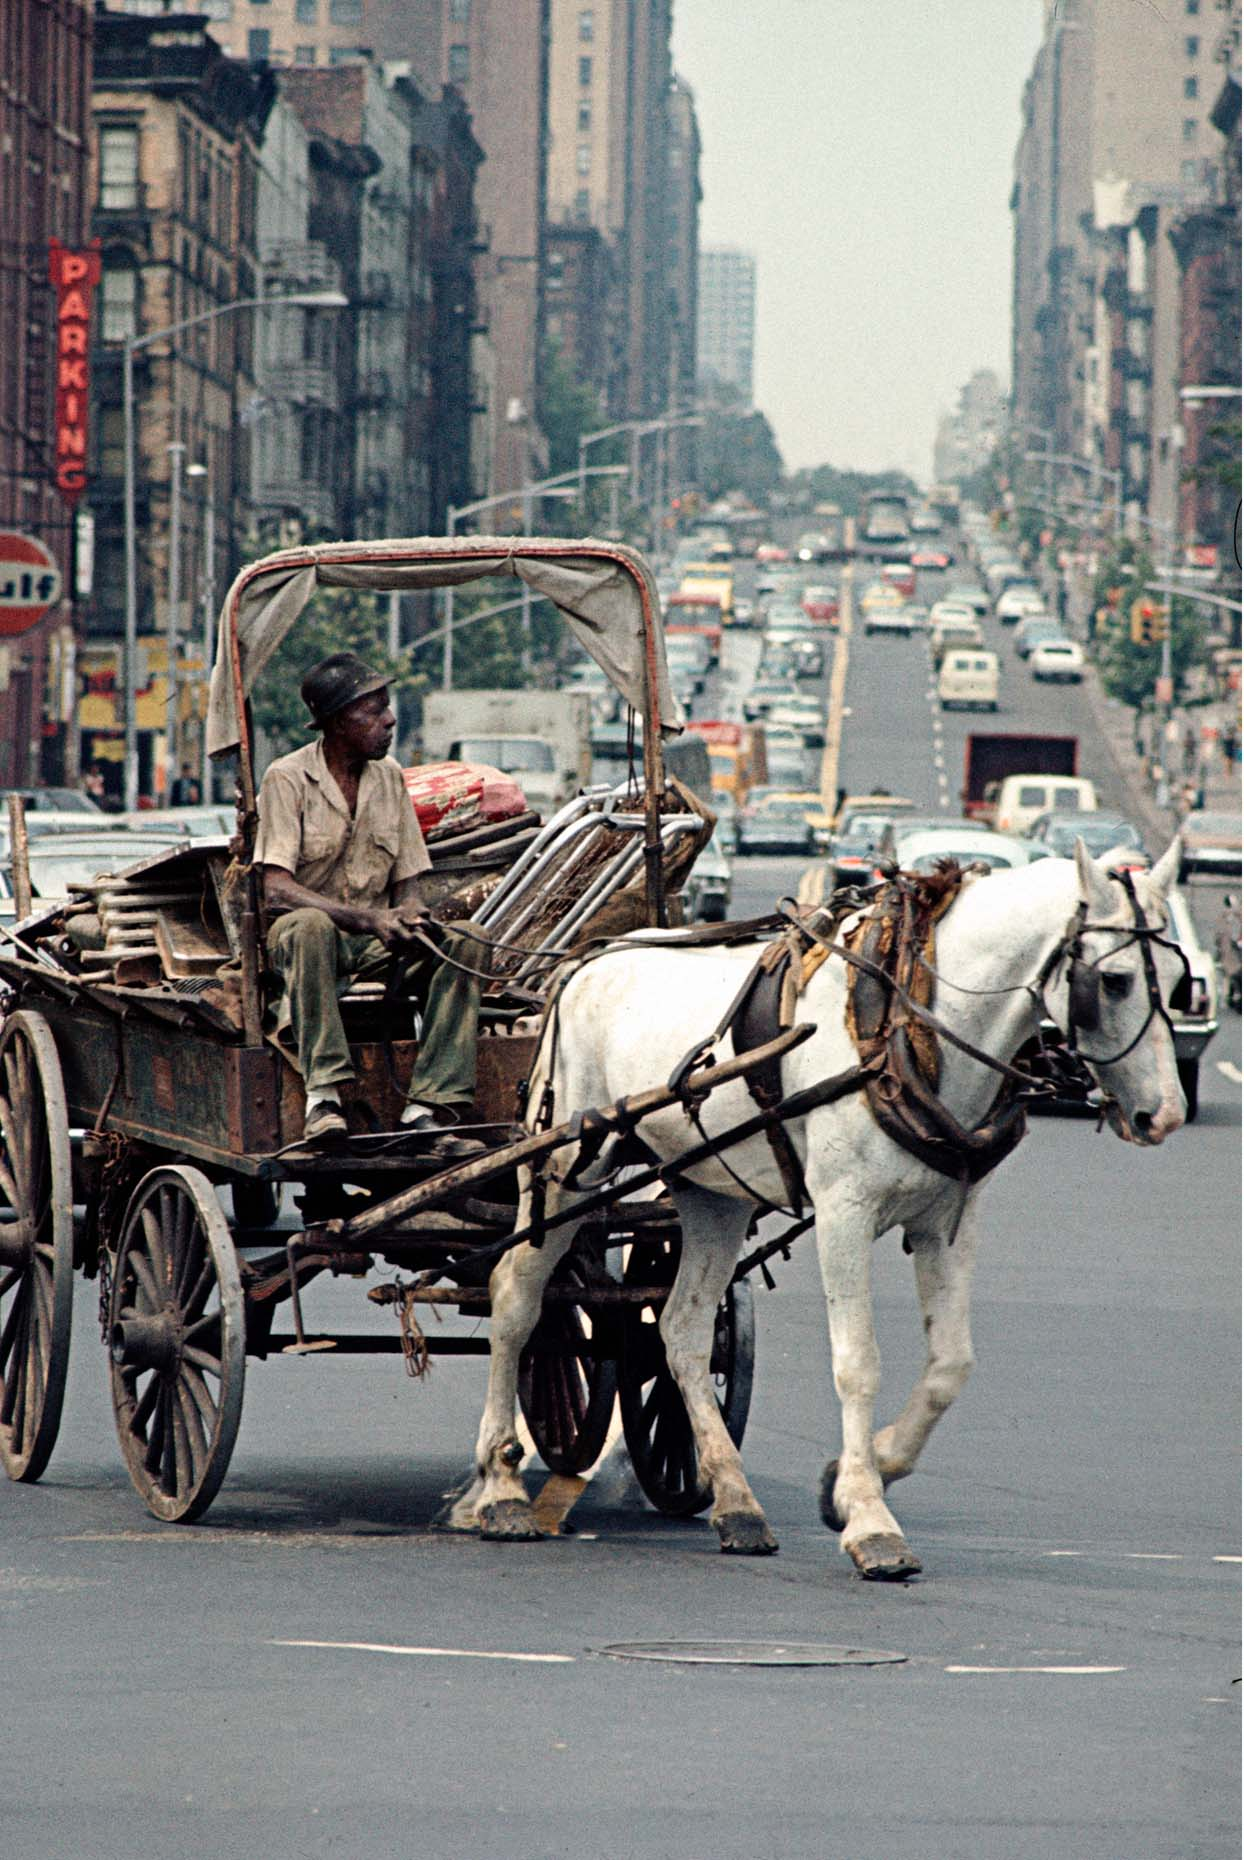 01_On the Way to Harlem, 1970_-DUP15